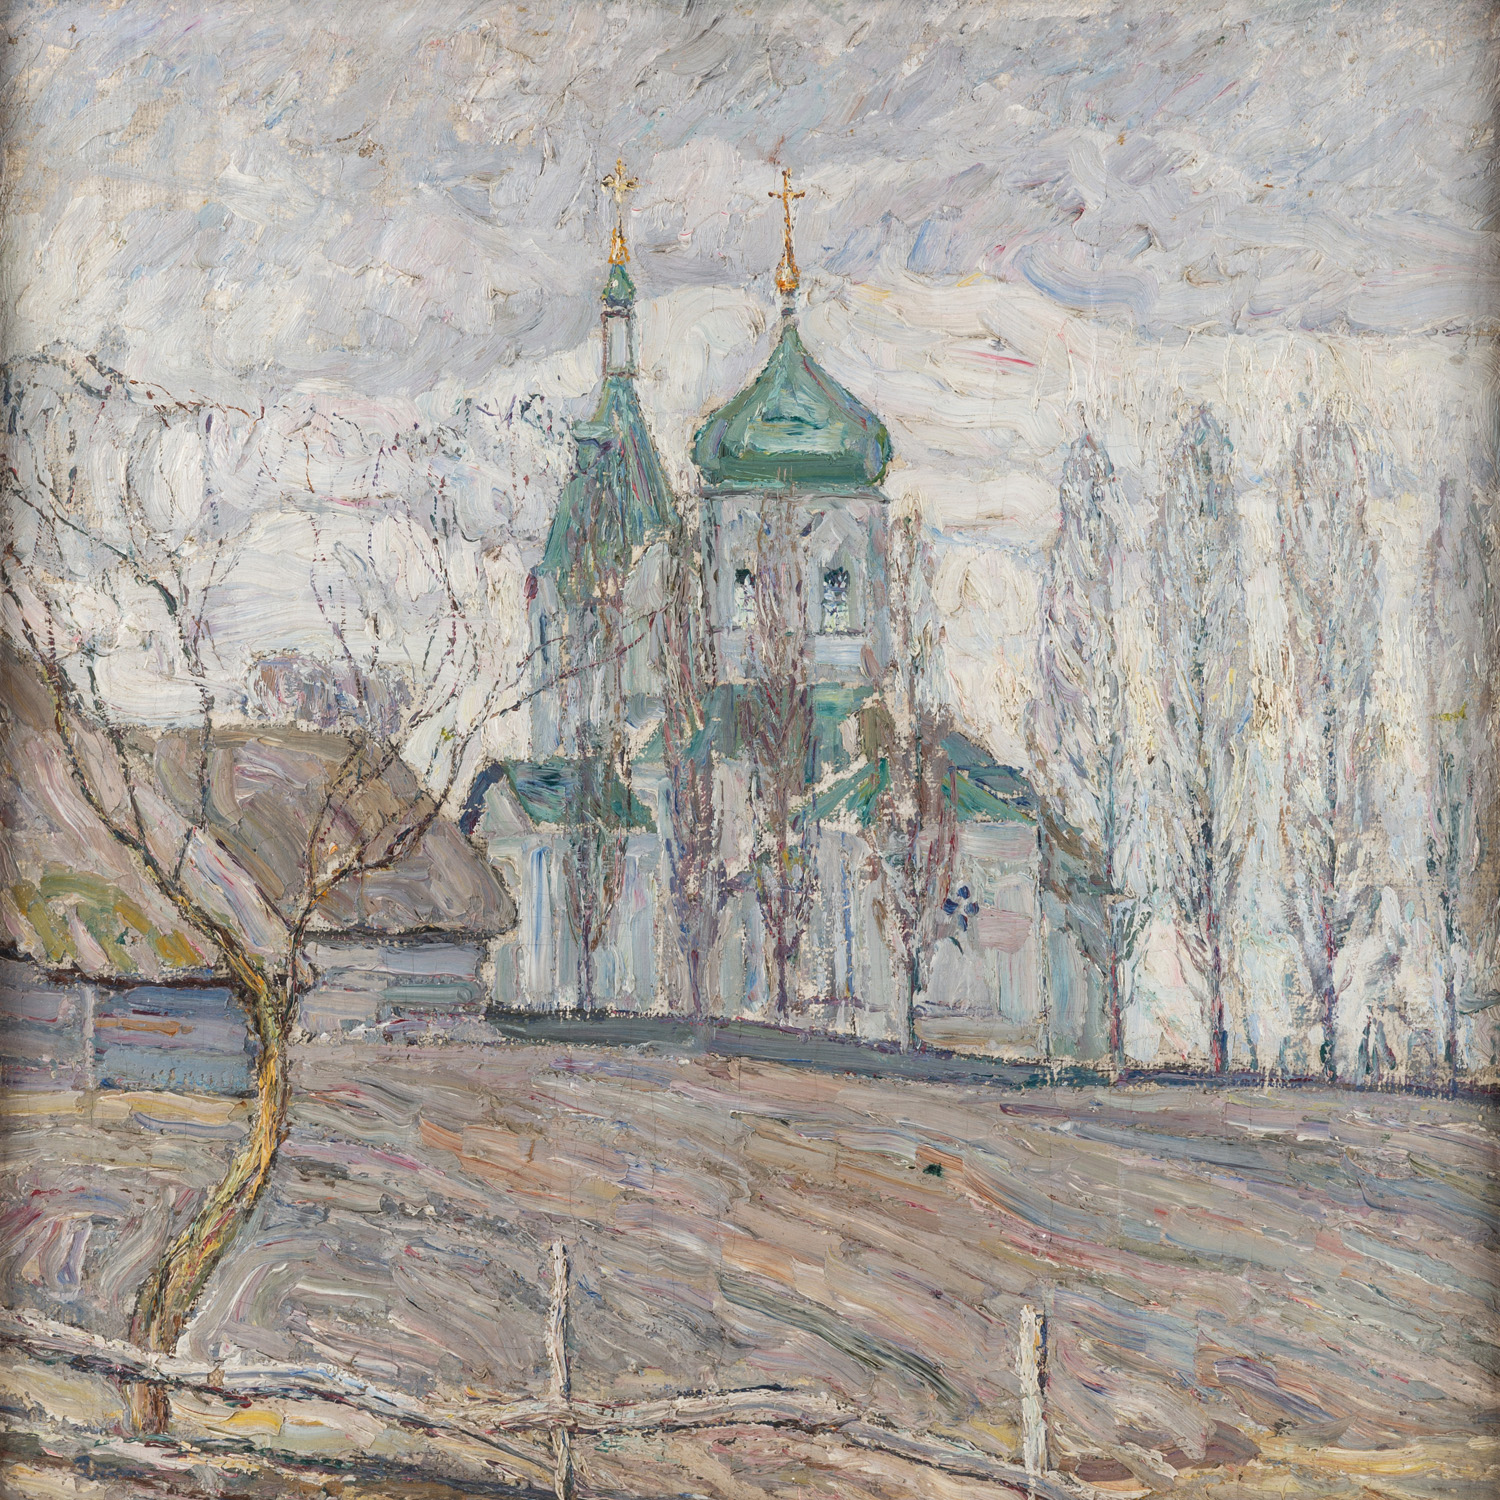 A DOUBLE-SIDED LANDSCAPE PAINTING BY ABRAHAM MANIEVICH (RUSSIAN 1883-1942) - Image 2 of 5